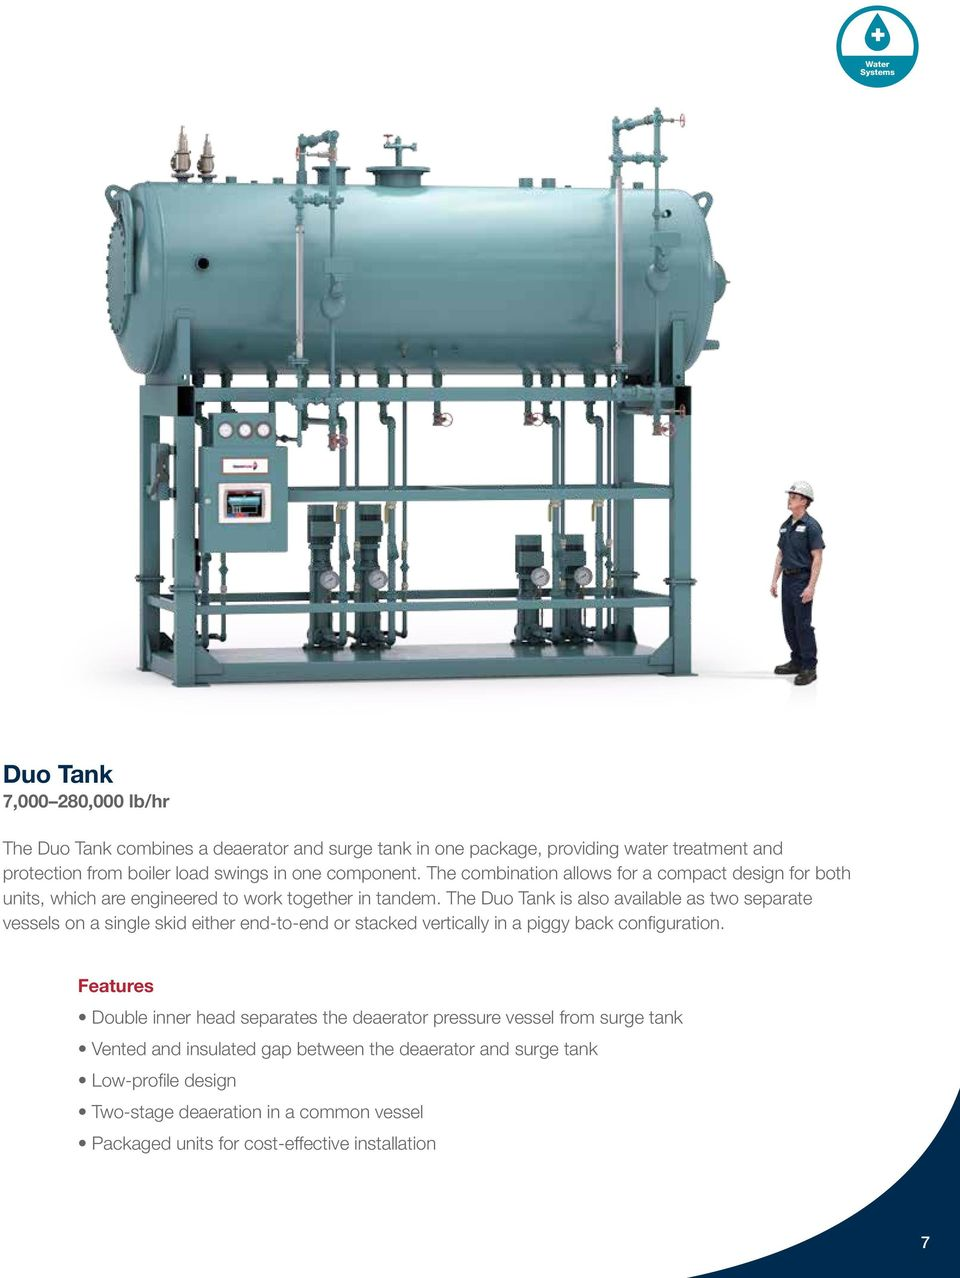 The Duo Tank is also available as two separate vessels on a single skid either end-to-end or stacked vertically in a piggy back configuration.